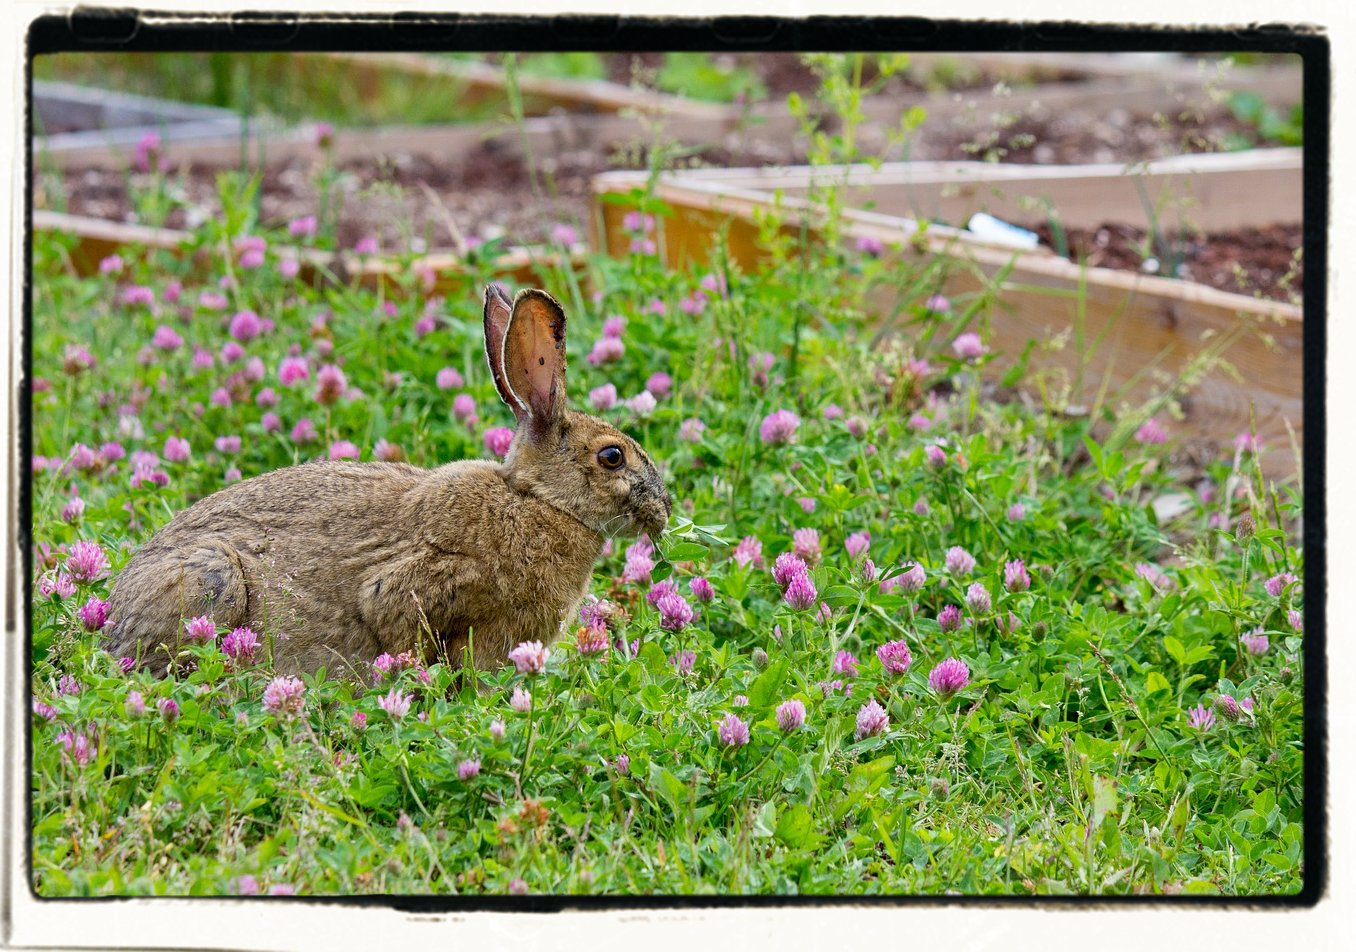 Stop rabbits from eating your garden farm homestead for How to deter rabbits from garden